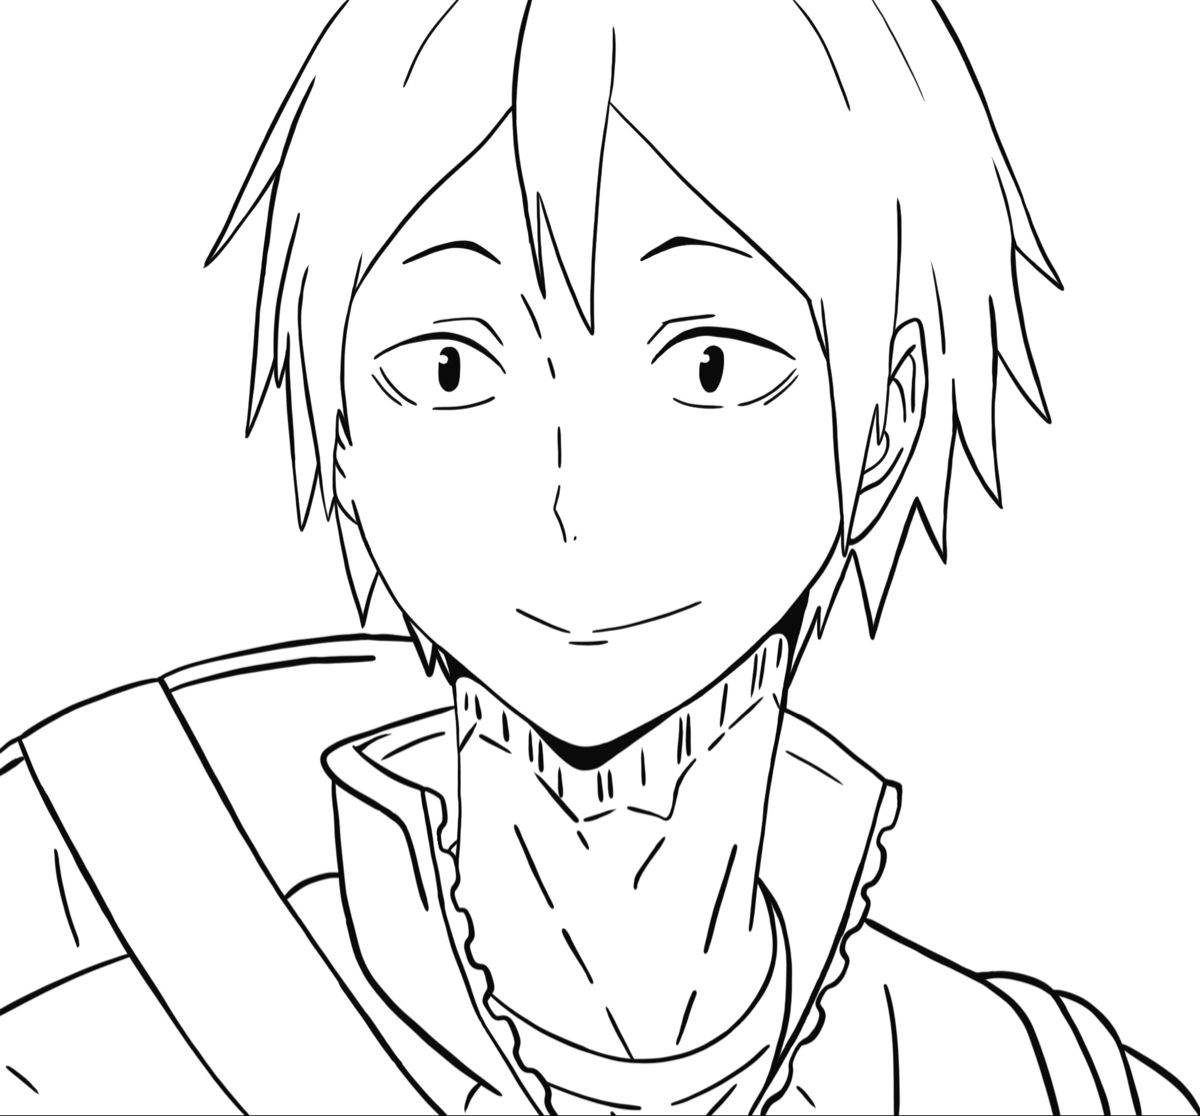 Yamaguchi Coloring Page 1 Anime Drawings Sketches Anime Character Drawing Anime Drawings